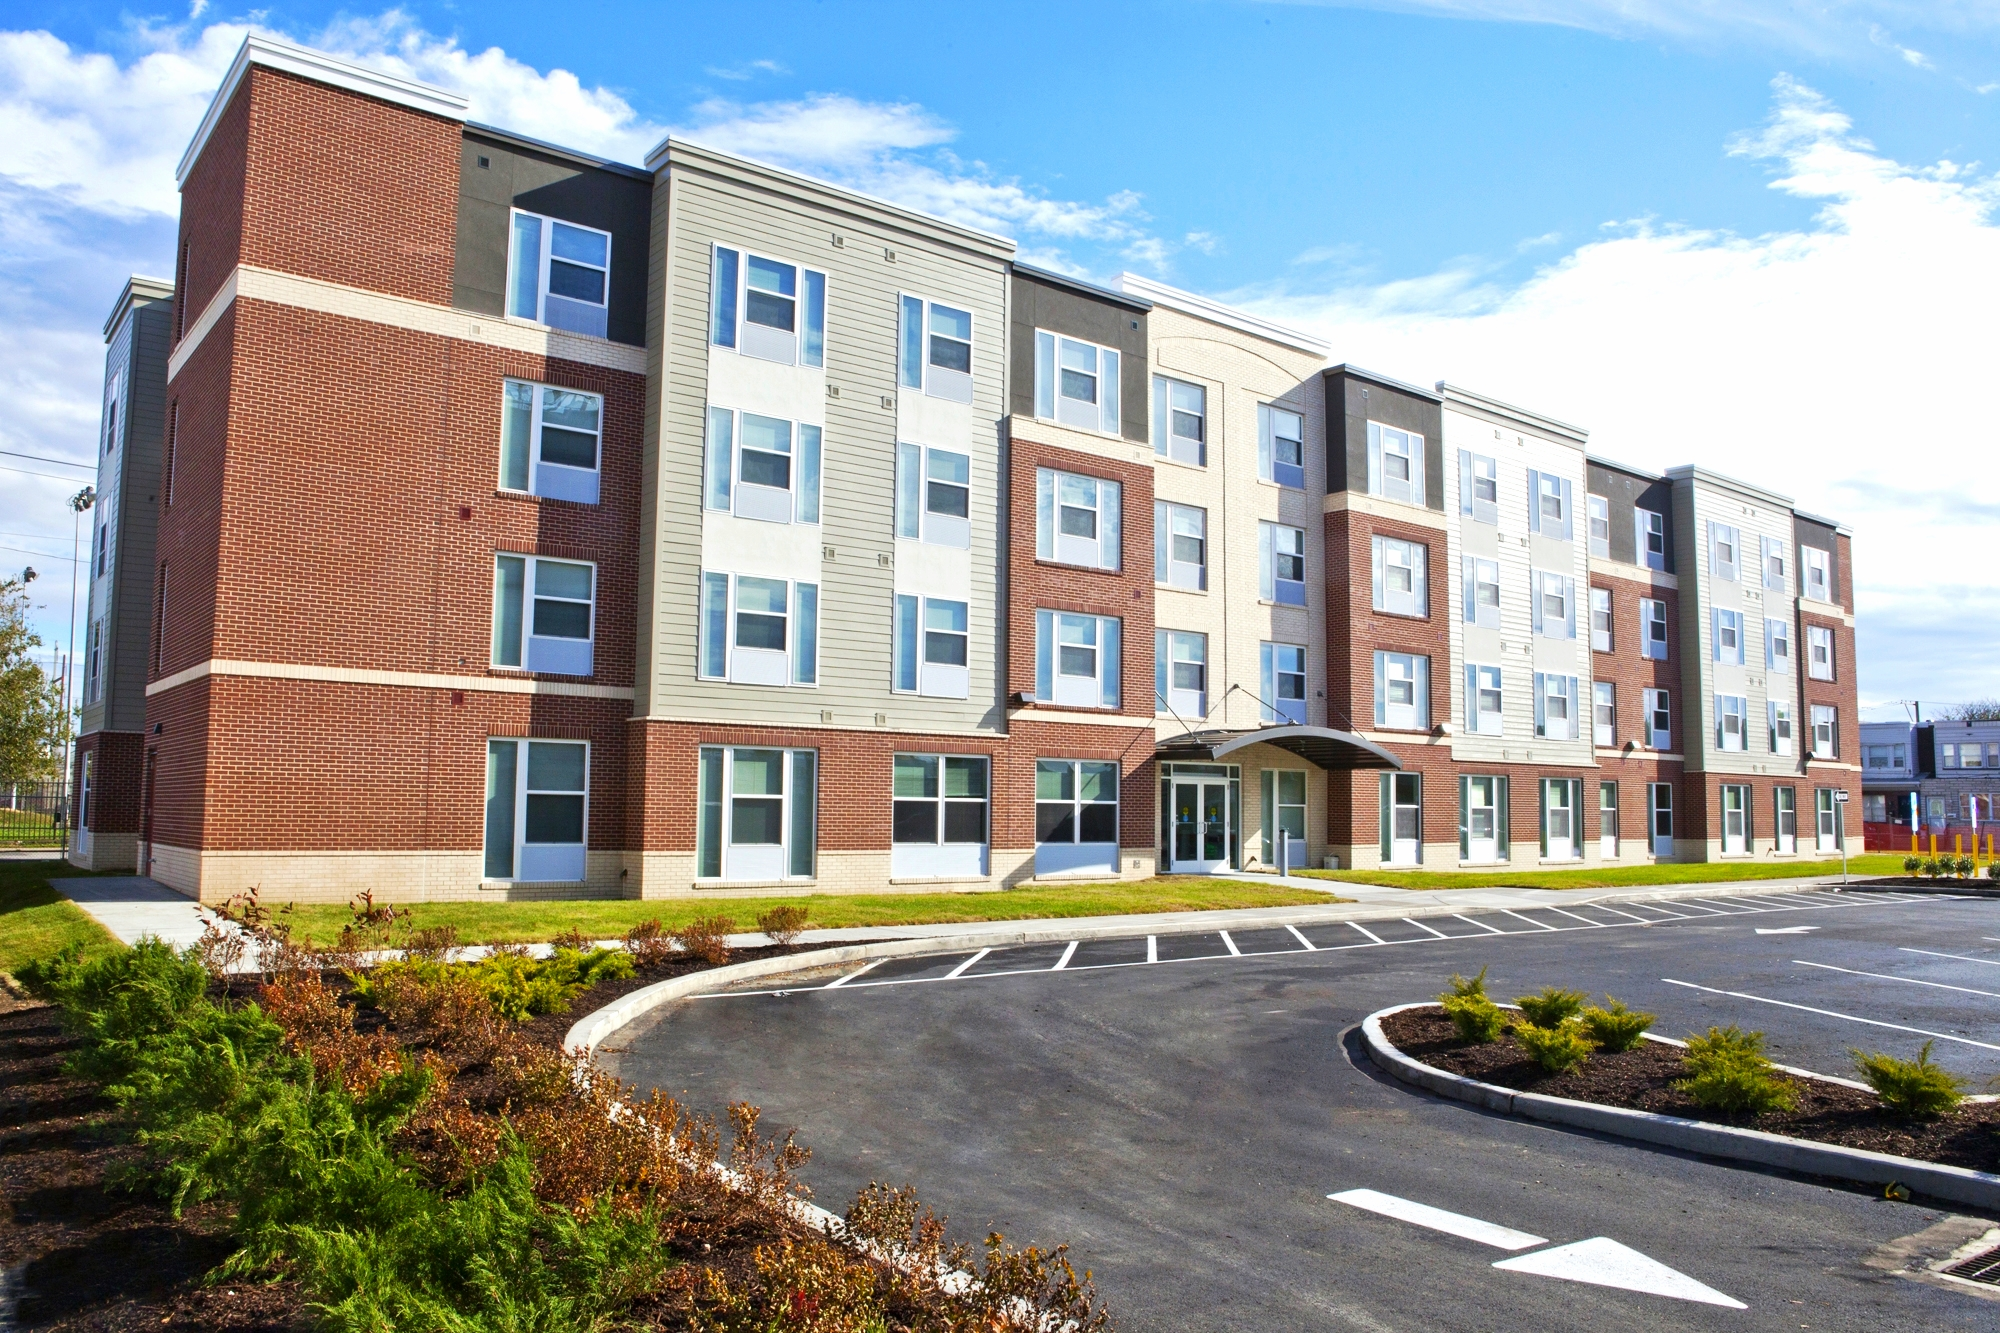 ANTHONY WAYNE SENIOR HOUSING